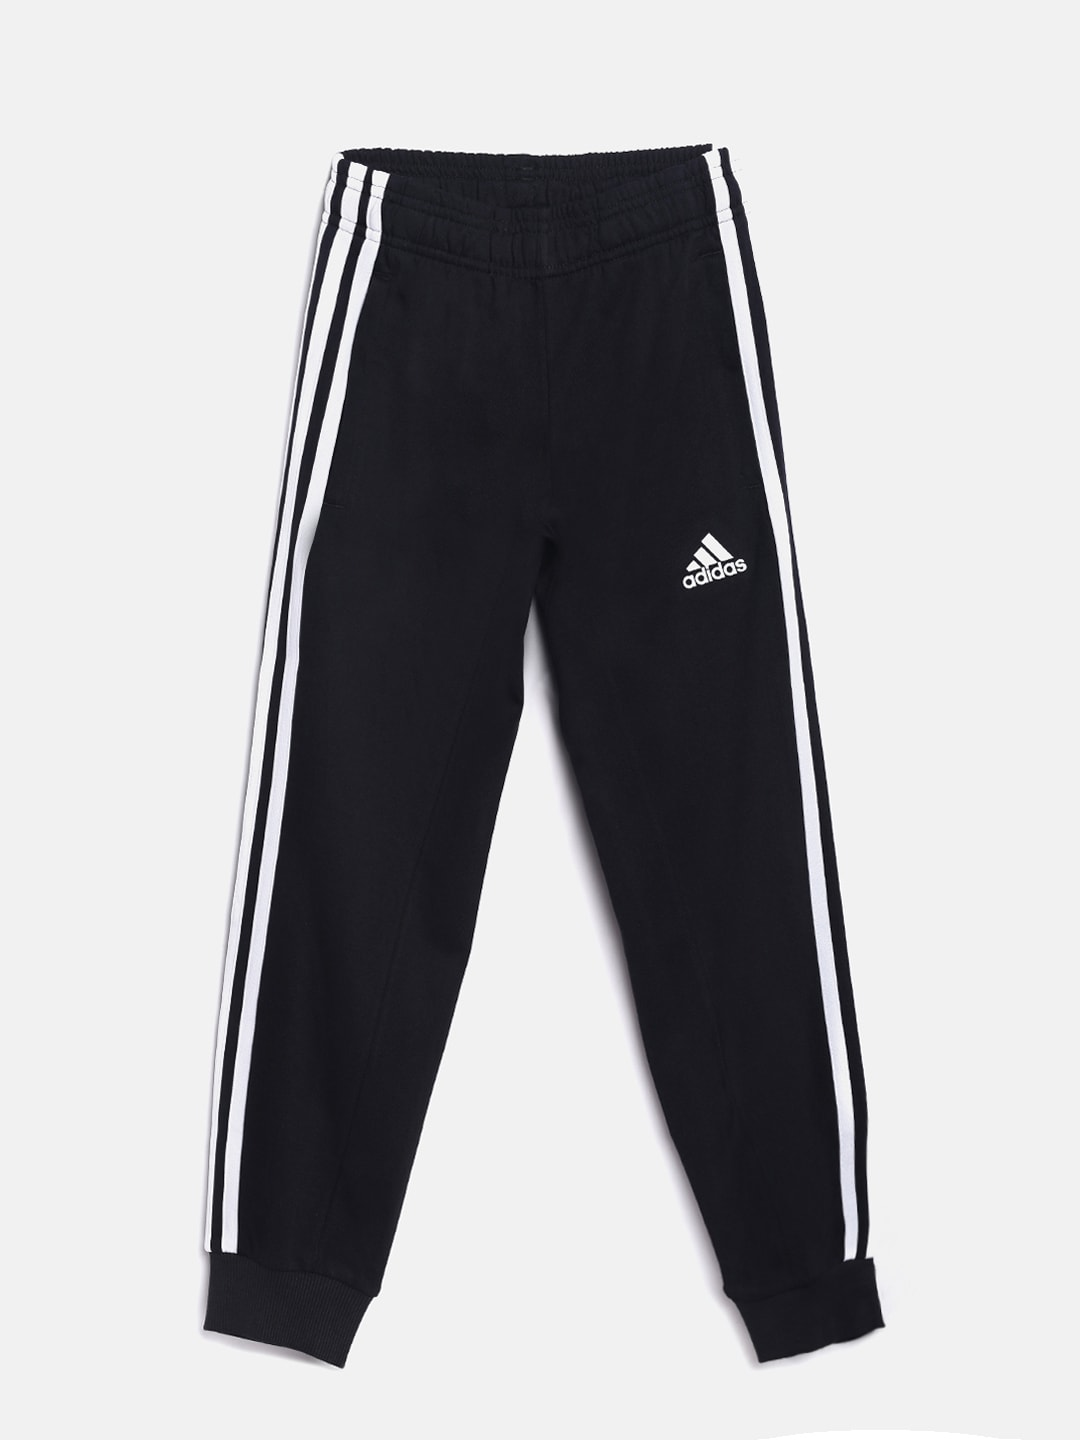 2318815d75c6 adidas Track Pants - Buy Track Pants from adidas Online